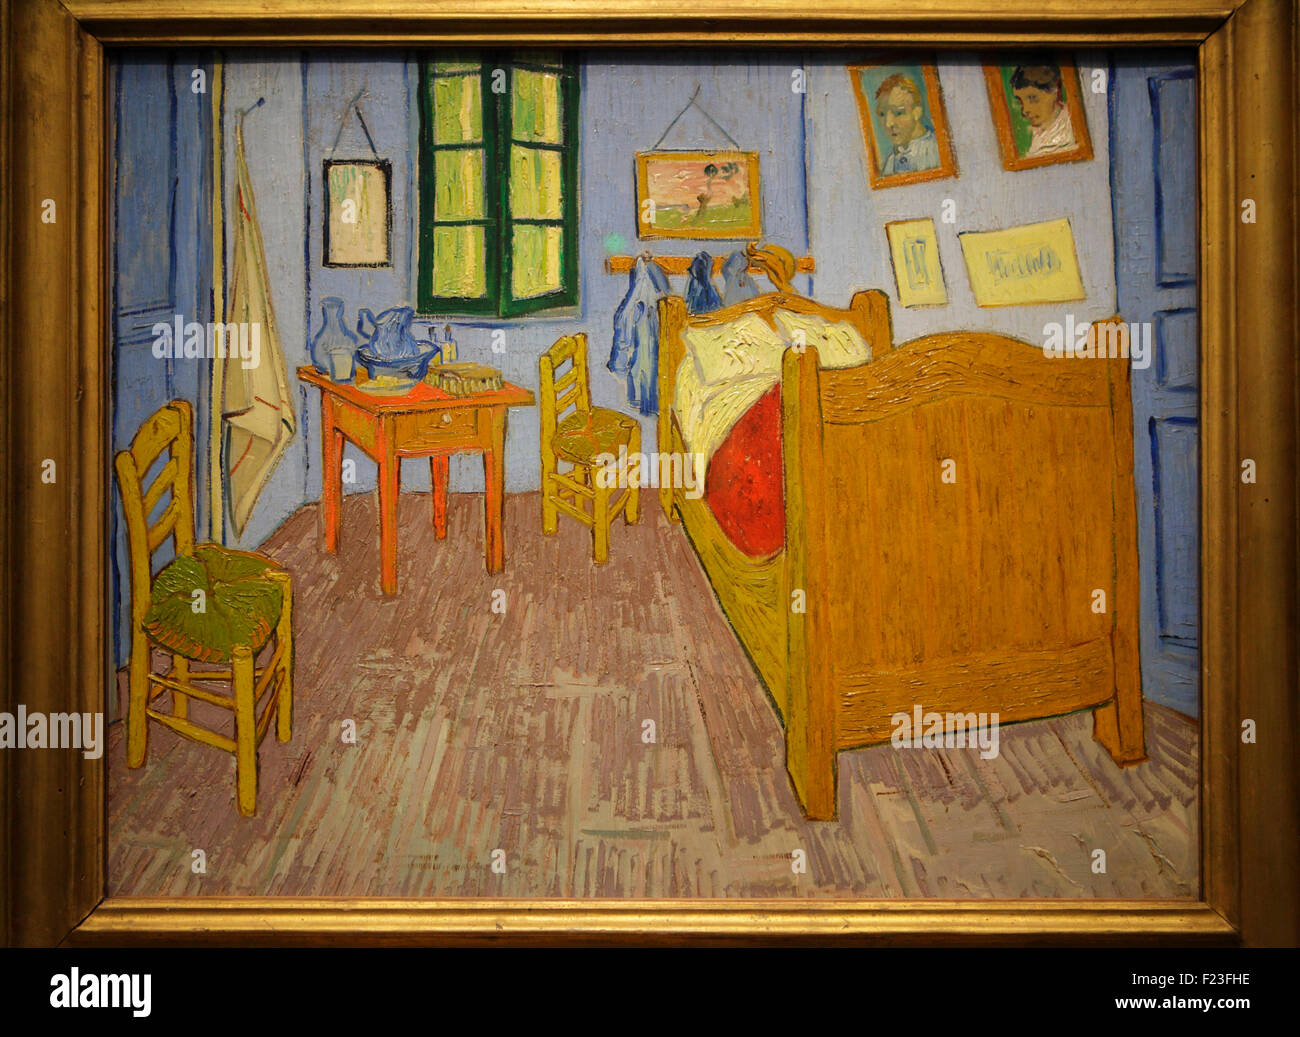 gogh stockfotos gogh bilder alamy. Black Bedroom Furniture Sets. Home Design Ideas